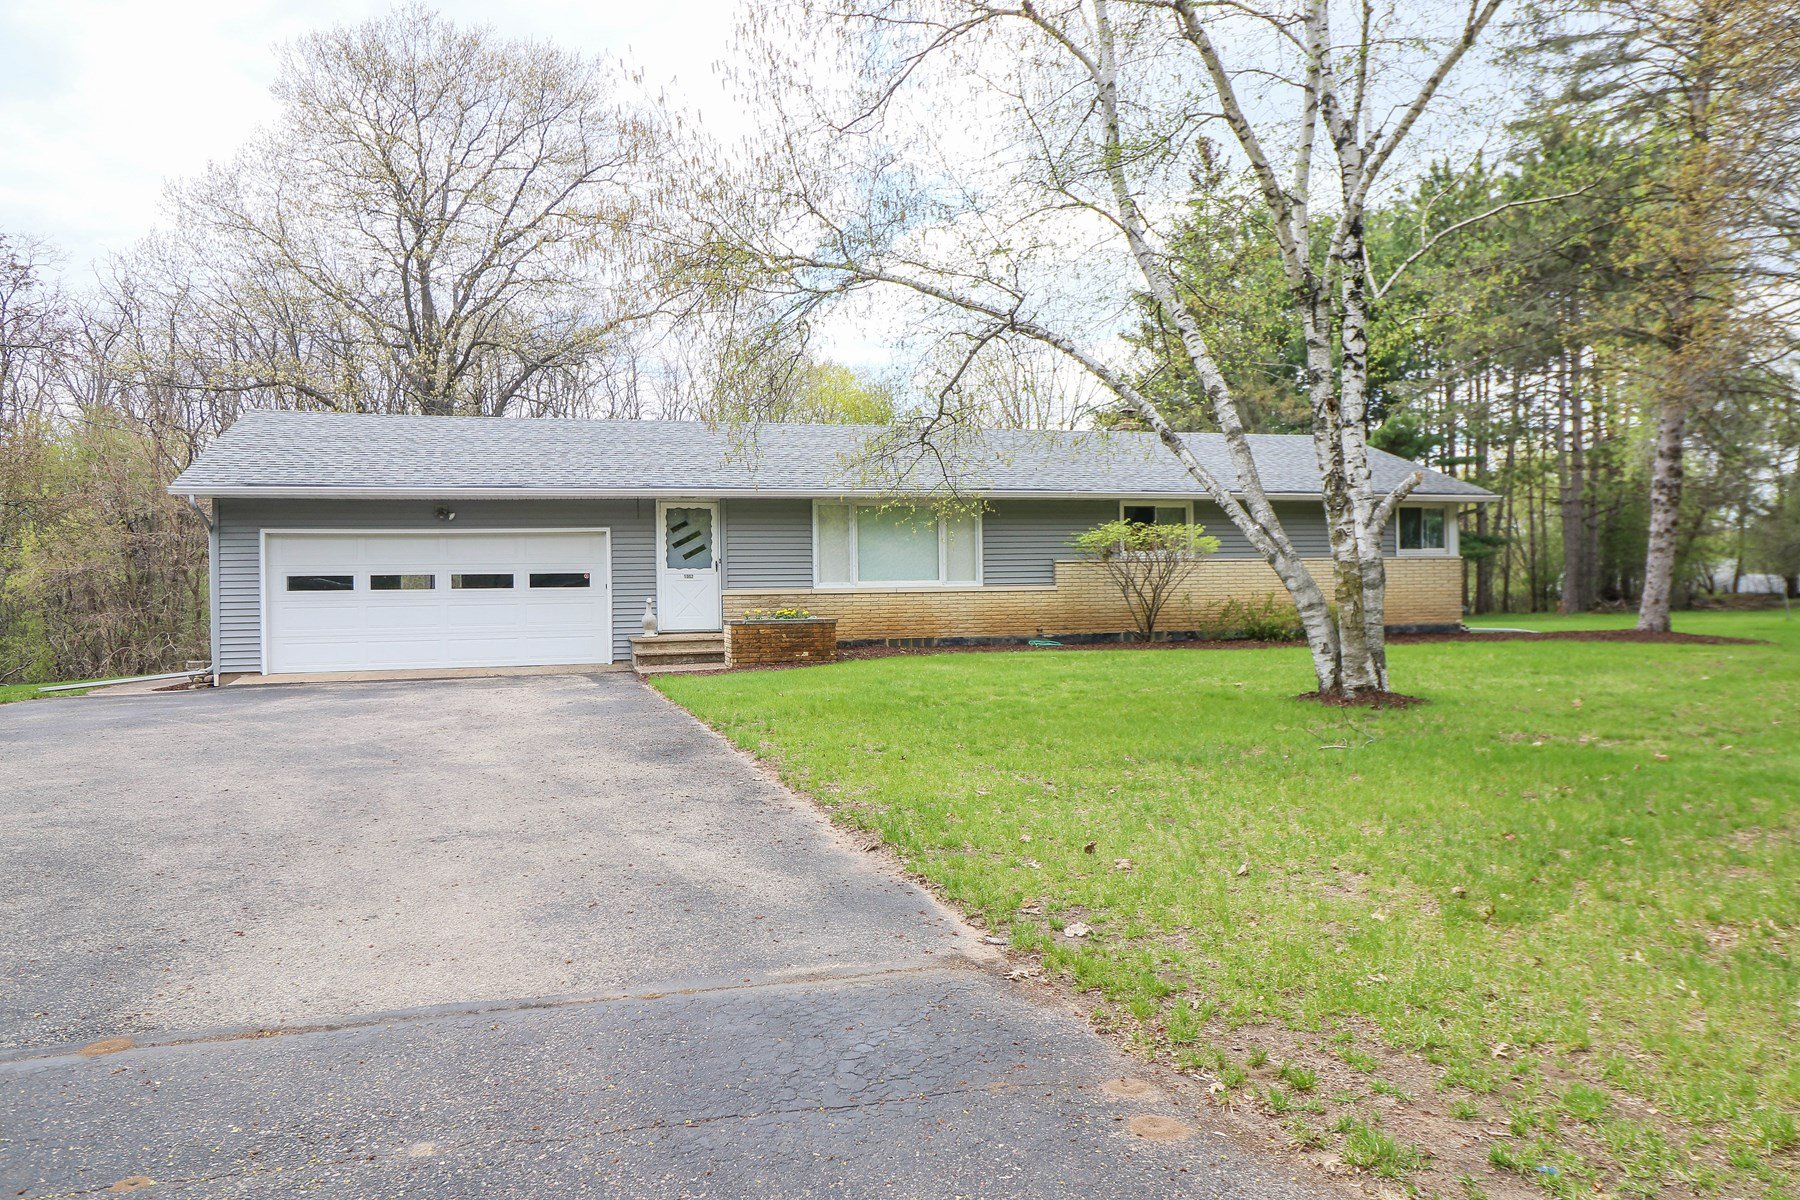 Home for Sale in Waupaca WI